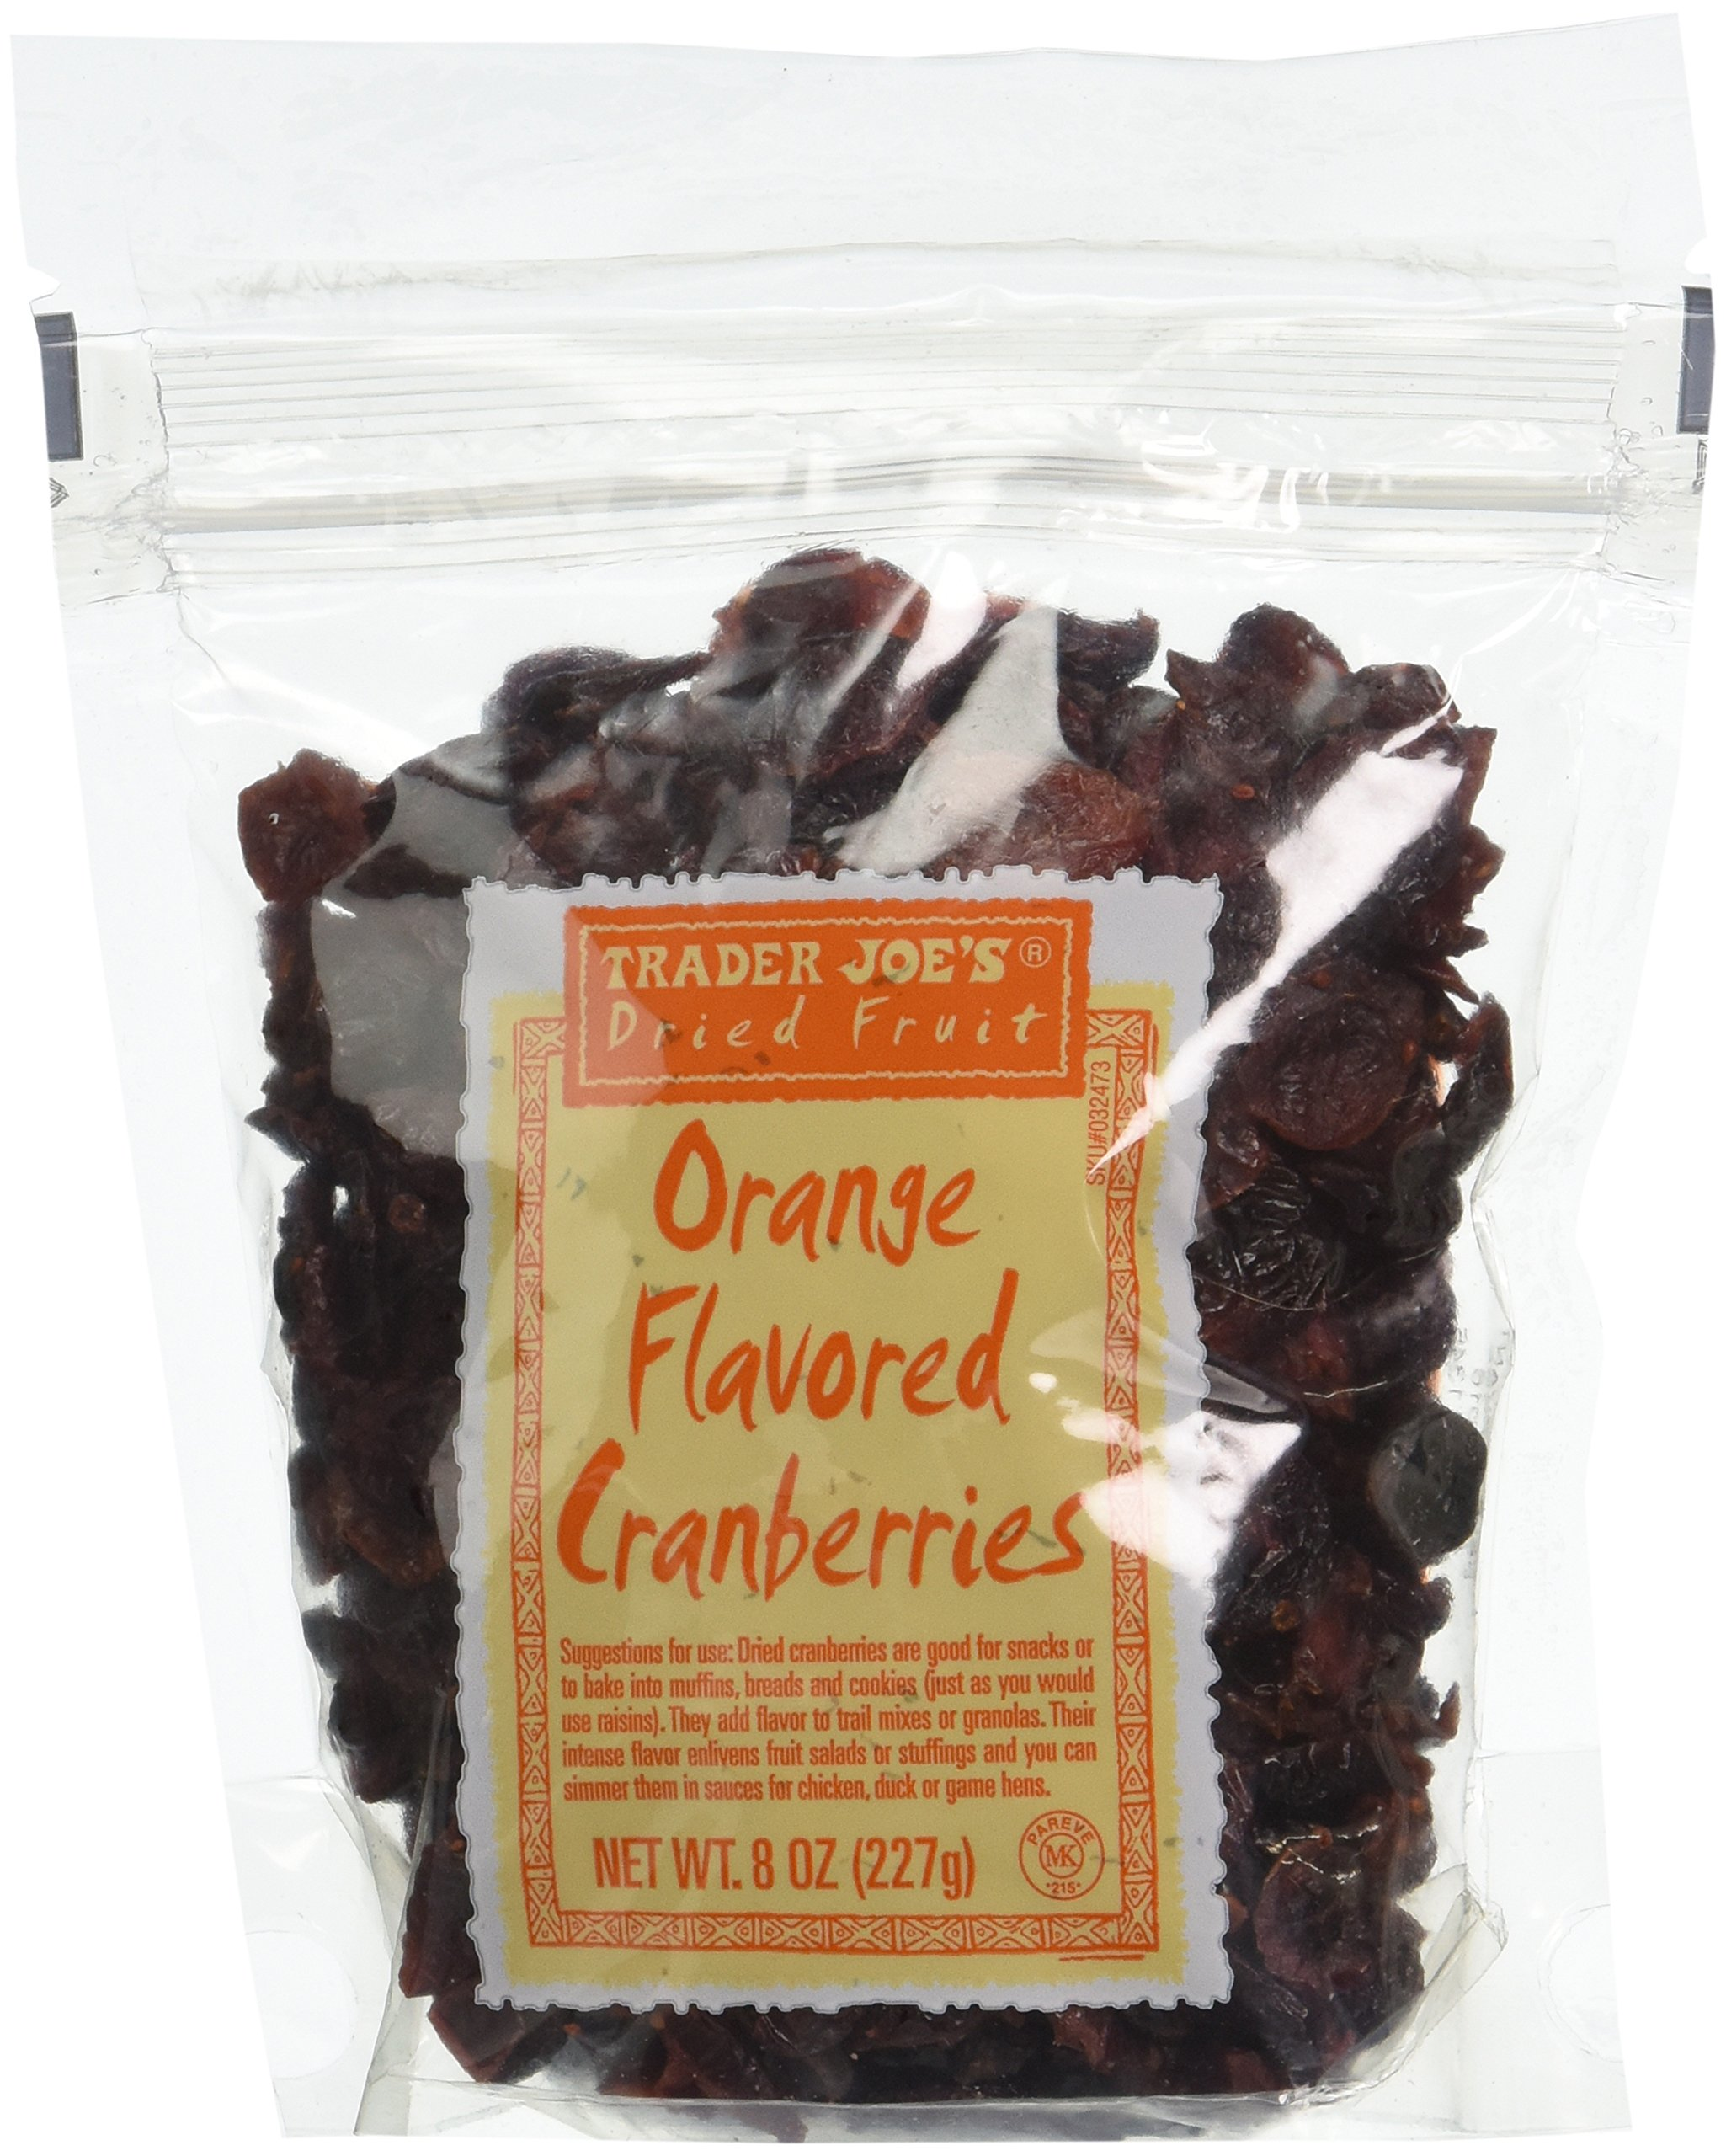 Trader Joe's Dried Fruit: Orange Flavored Cranberries, 8 ounce bags, Set of 4 by Trader Joe (Image #1)